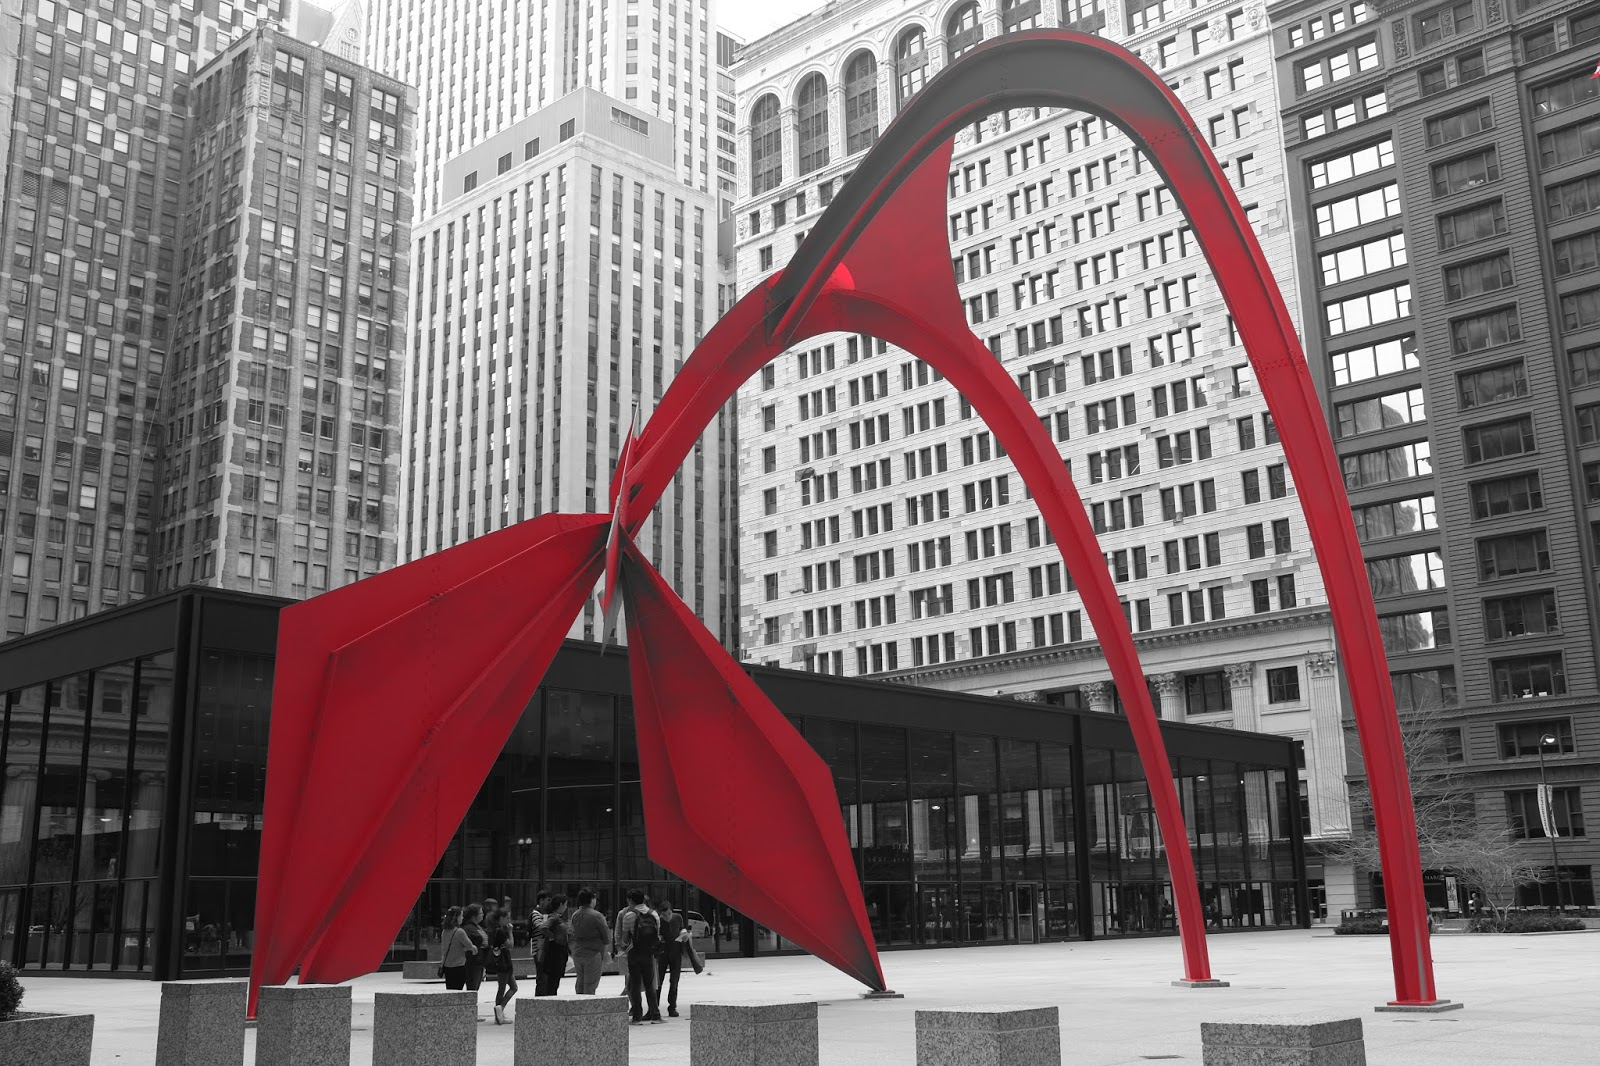 Le Chameau Bleu - Blog Voyage Chicago USA - Visite de Chicago et  Le Flamingo de Calder